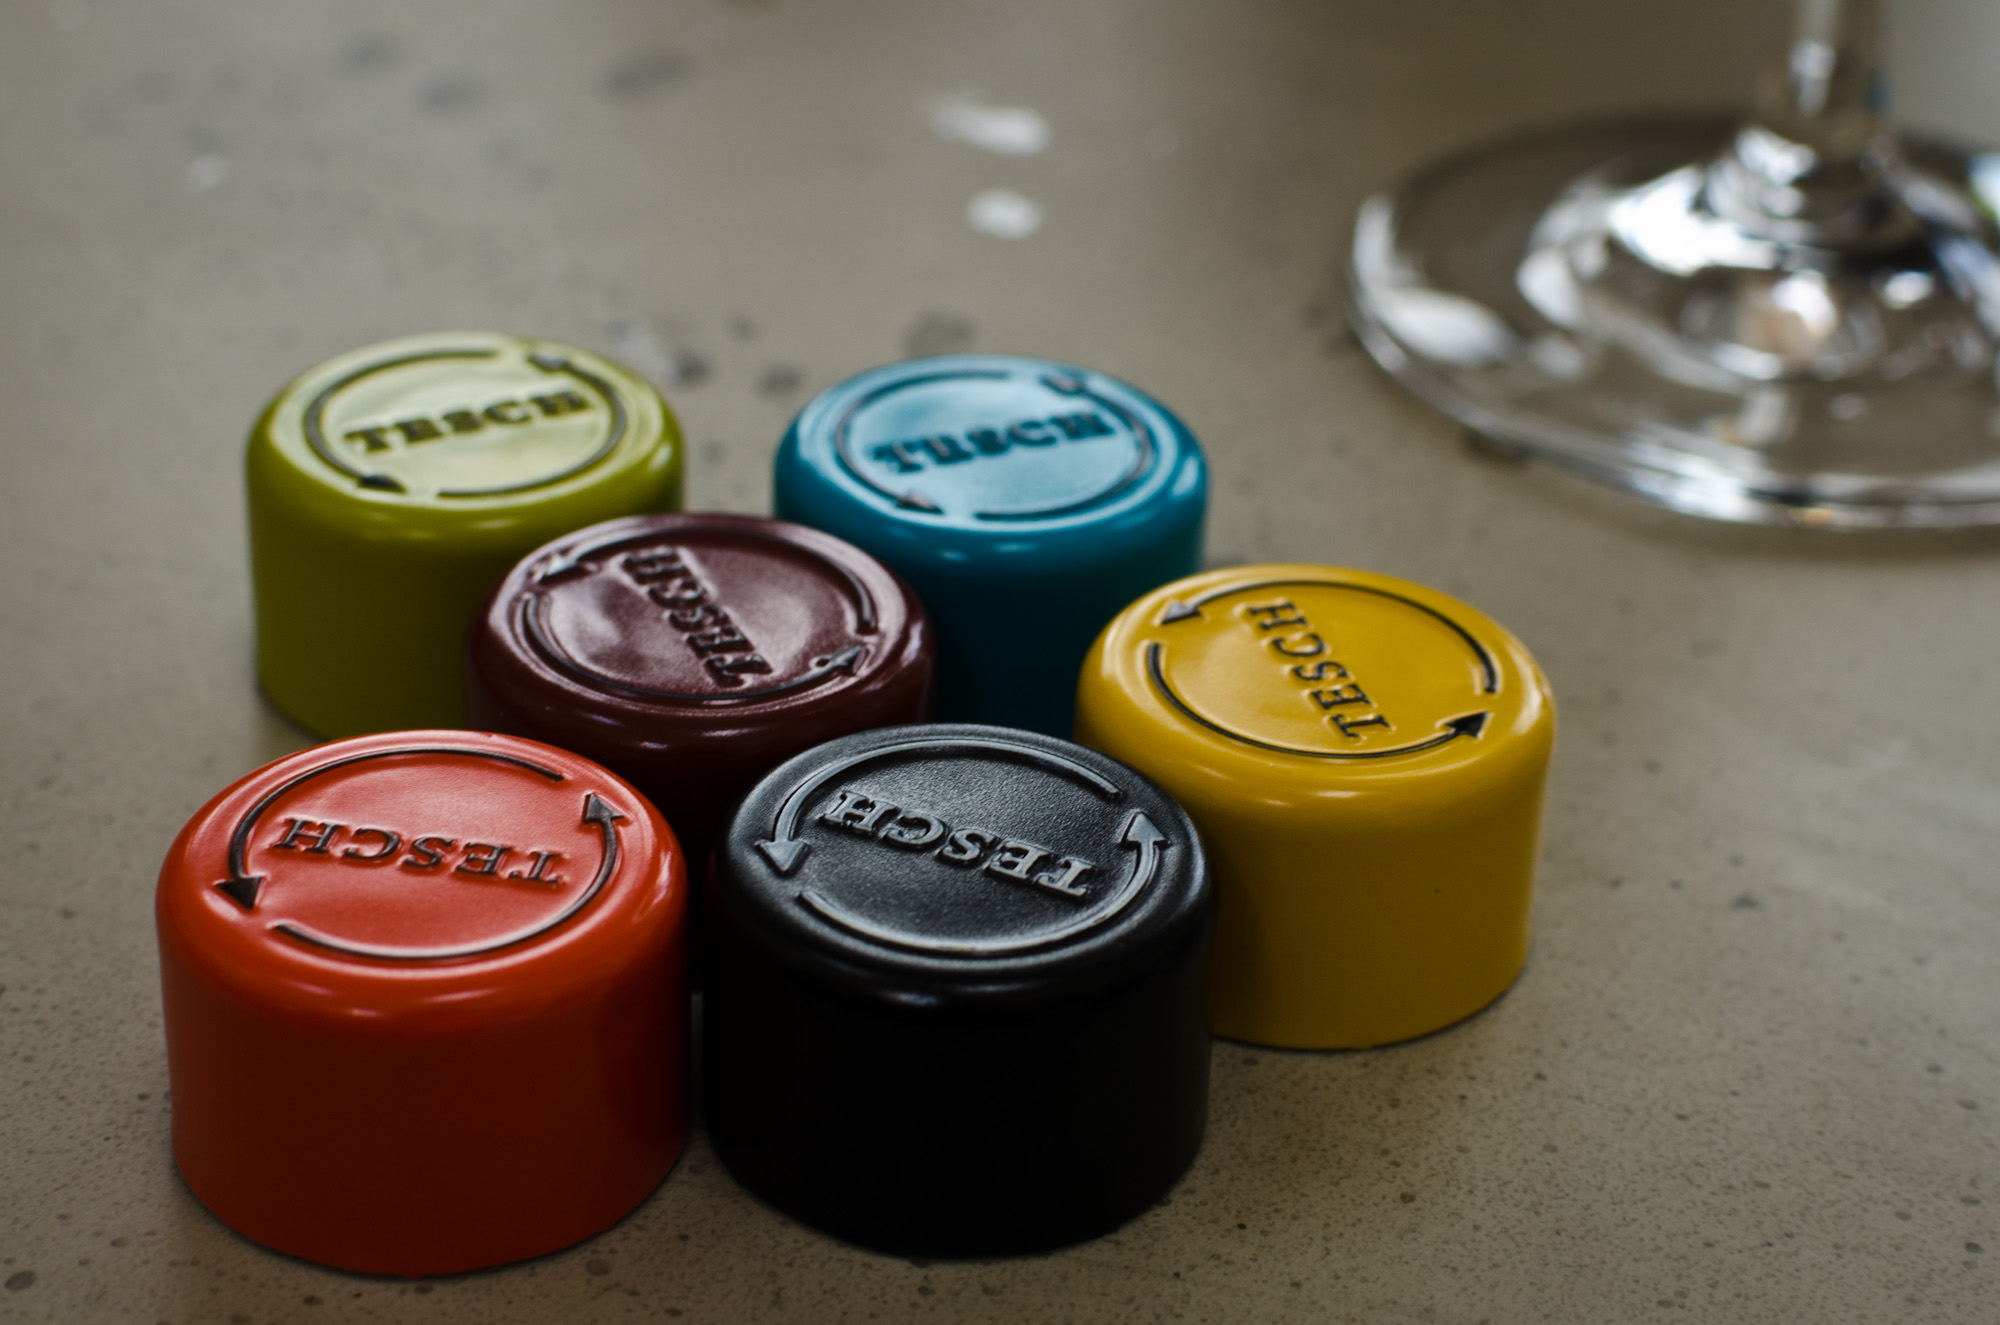 colour coding on screwcaps to distinguish wines